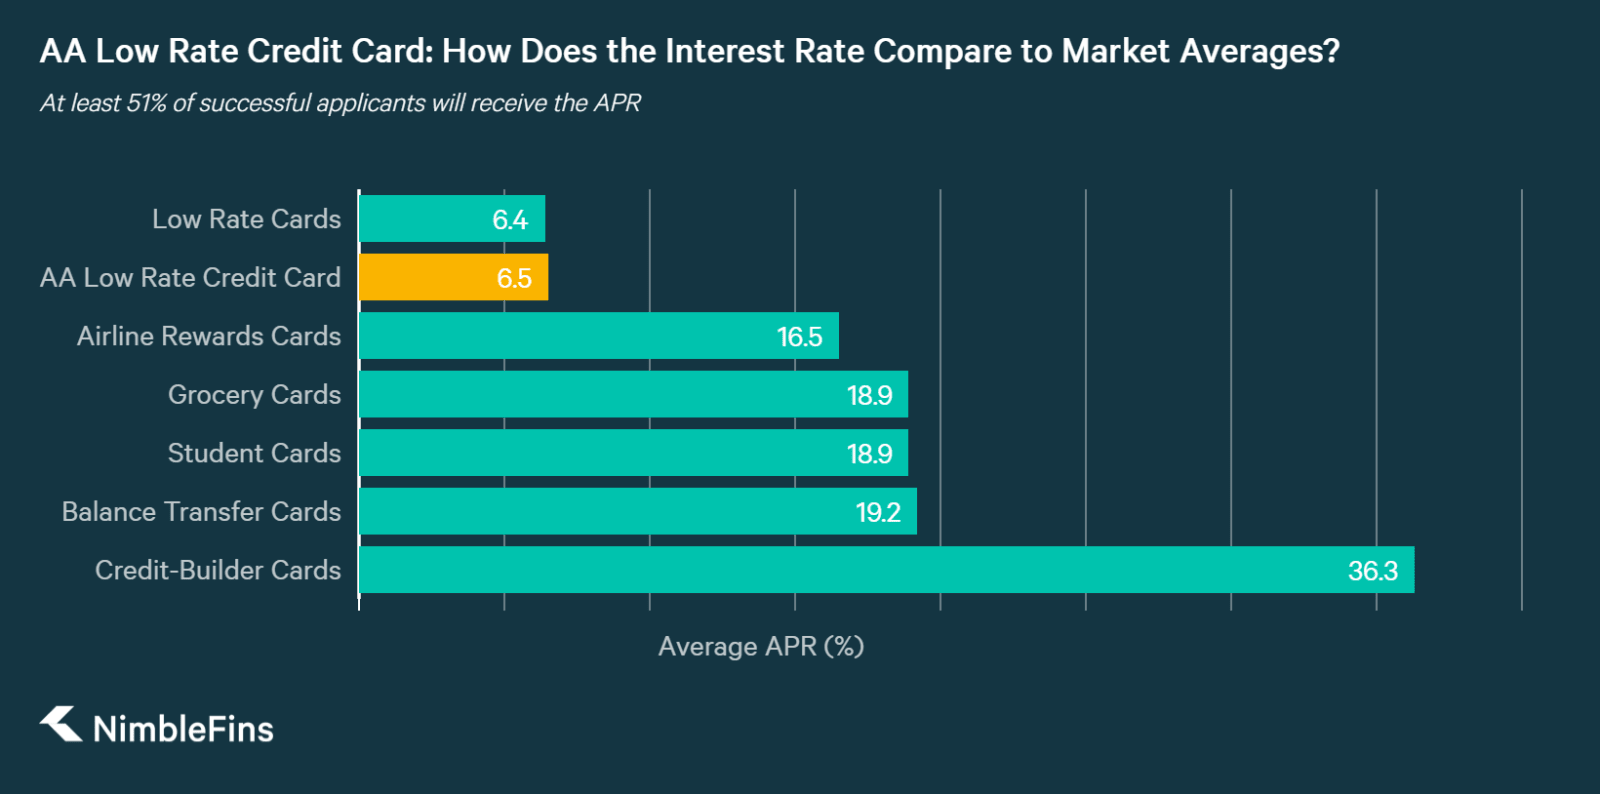 chart comparing the AA low rate interest rate to average interest rates